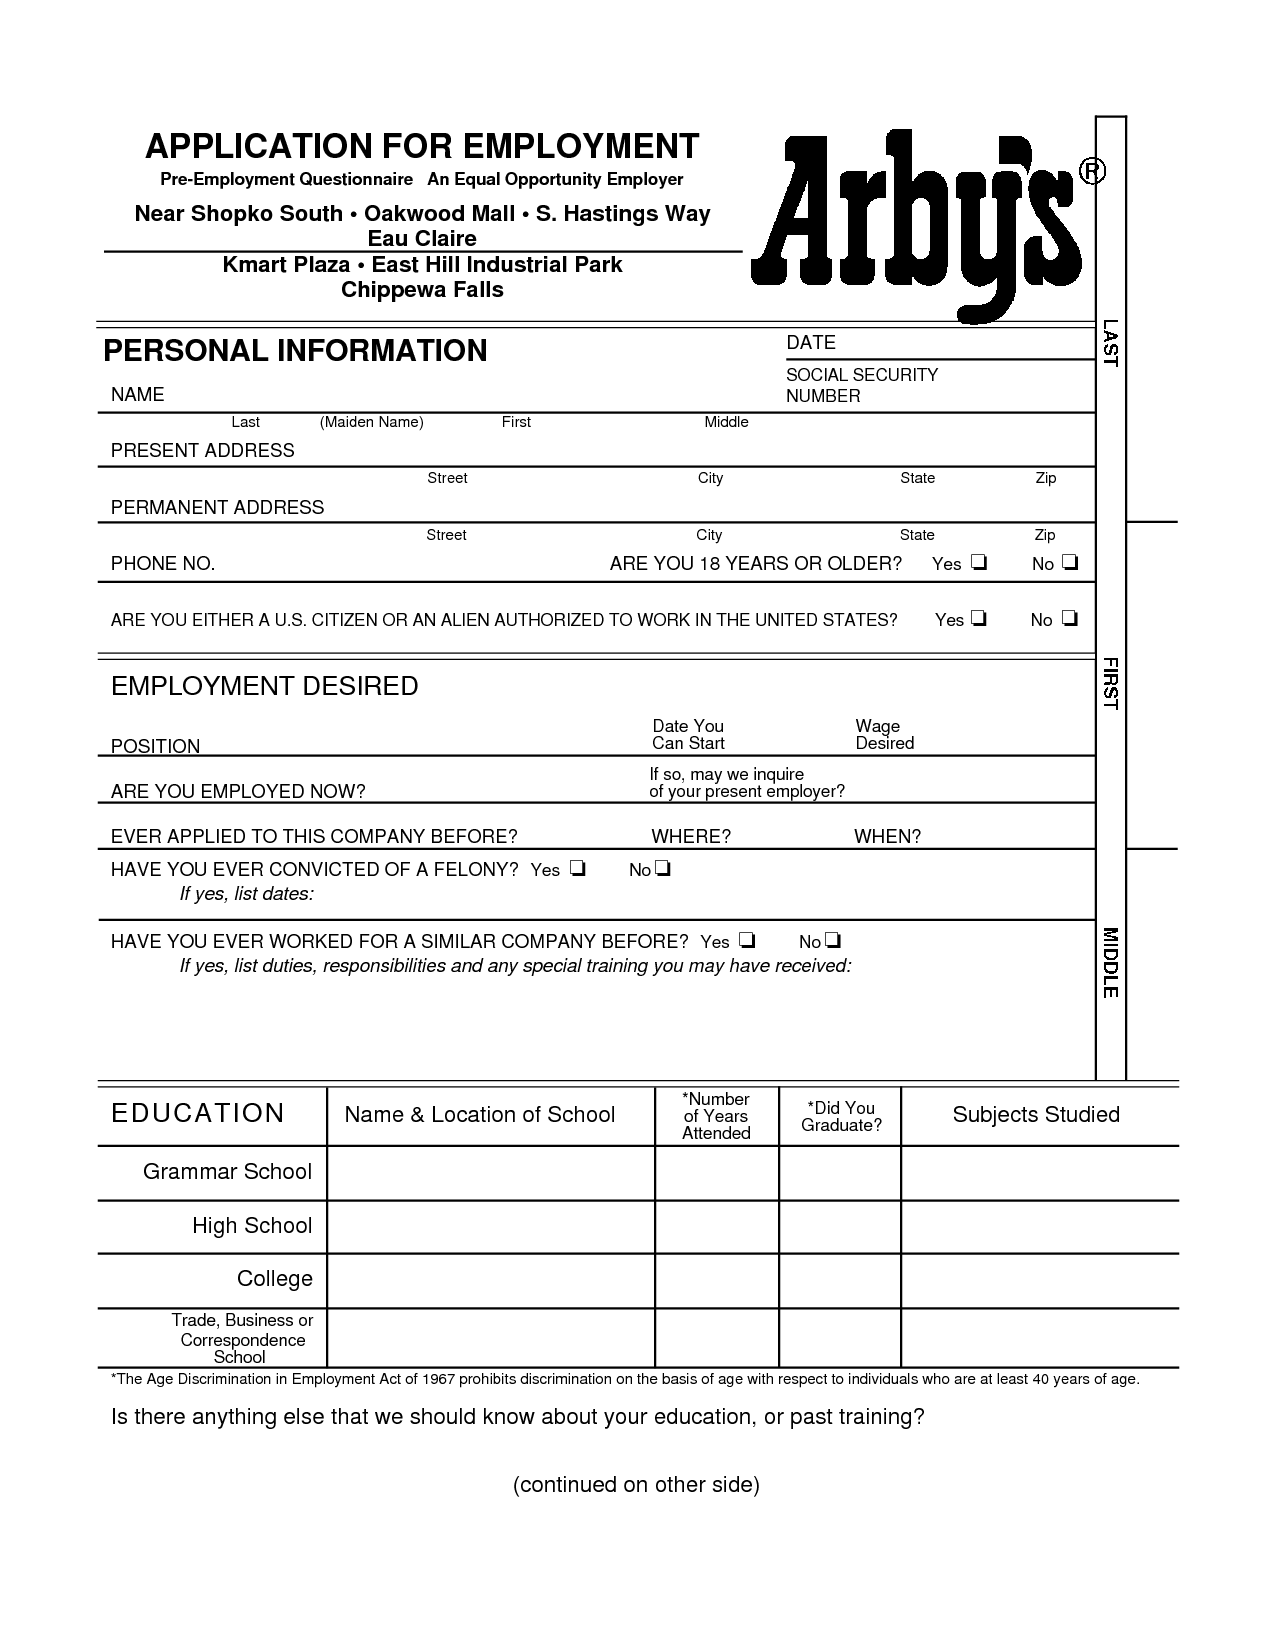 Arby Job Application Form Printable Job Application Form Employment Application Job Application